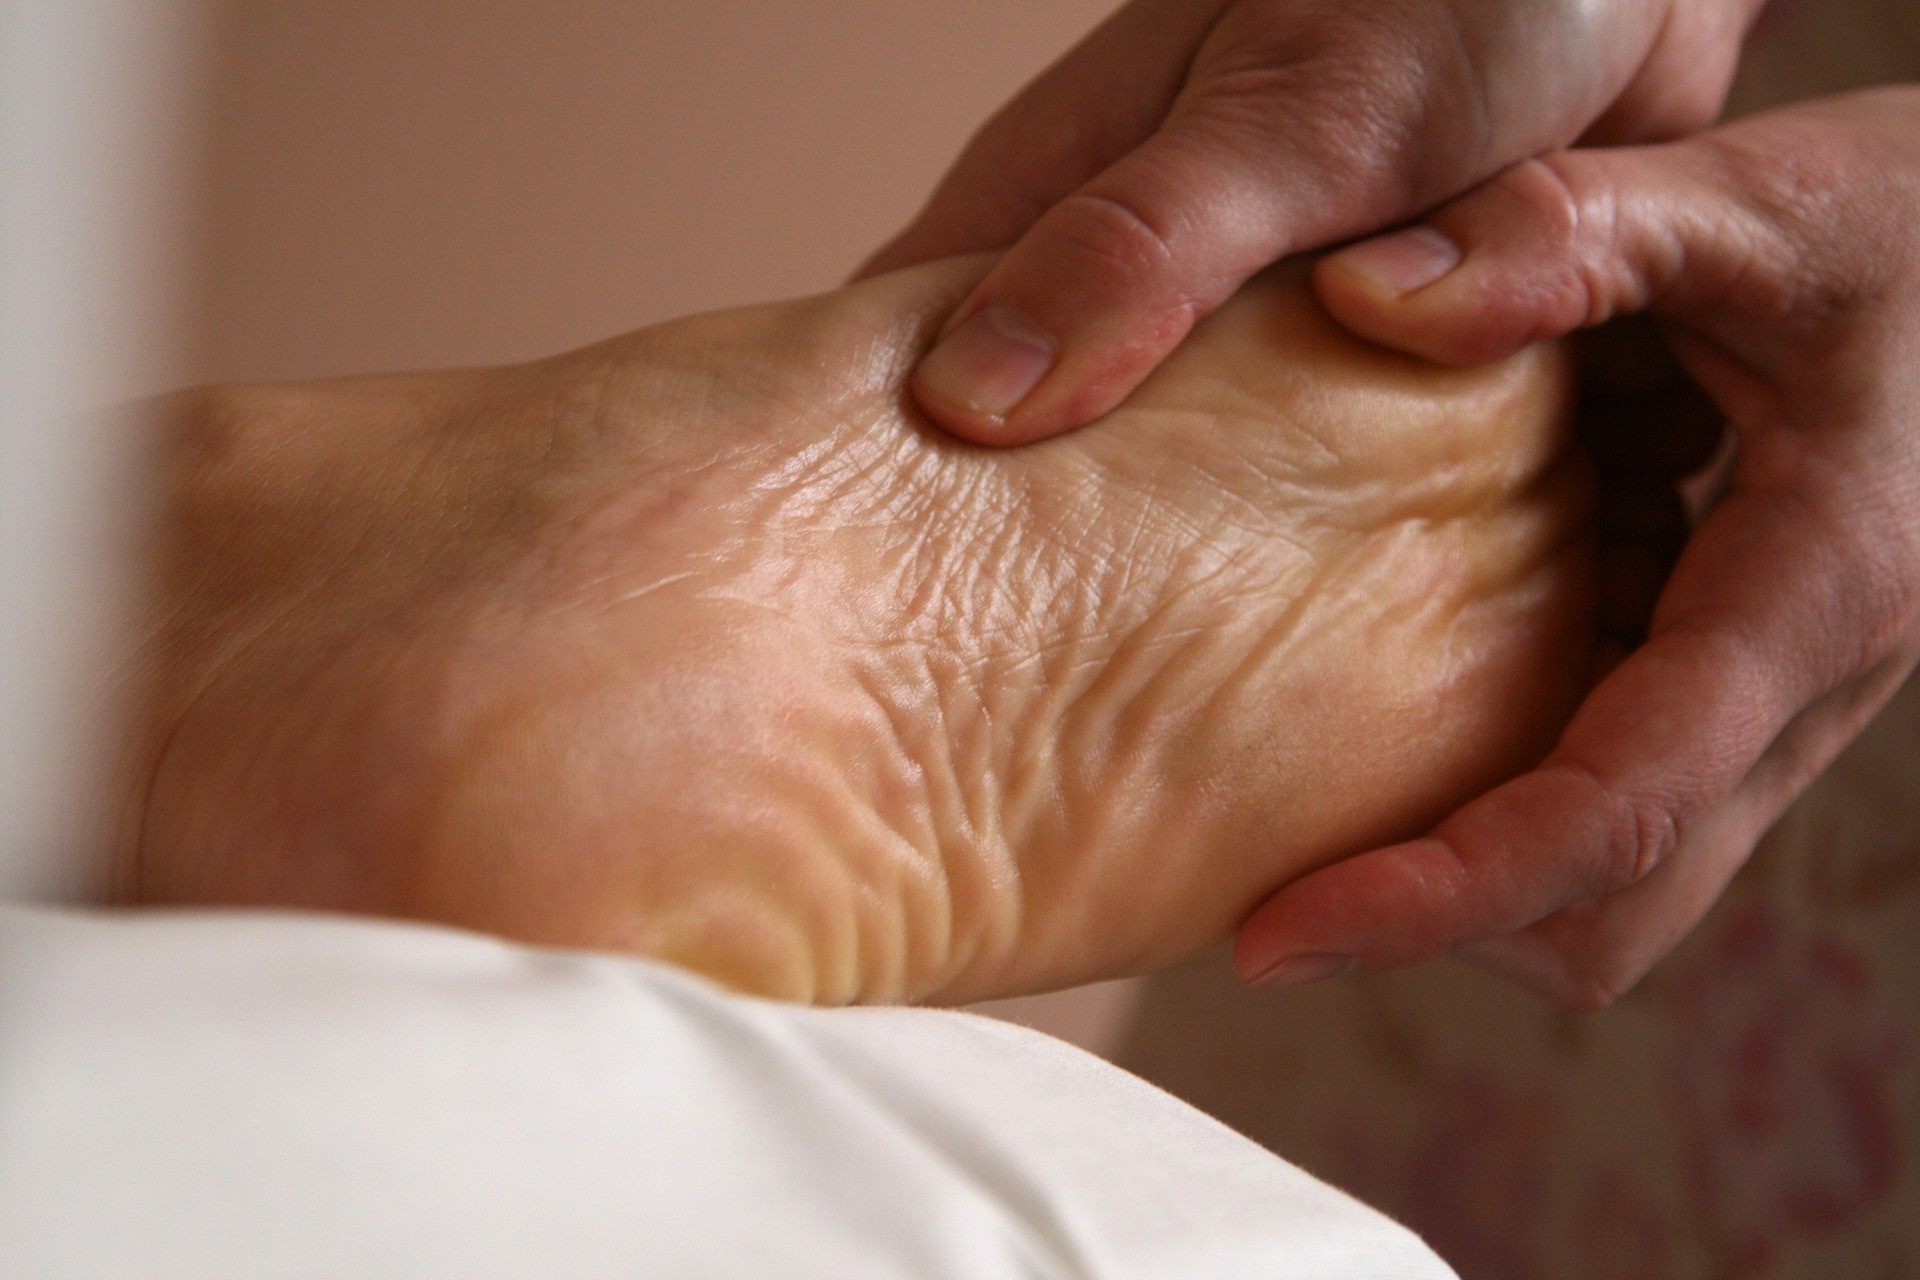 Circular Massage Strokes Could Help Provide Some Relief!